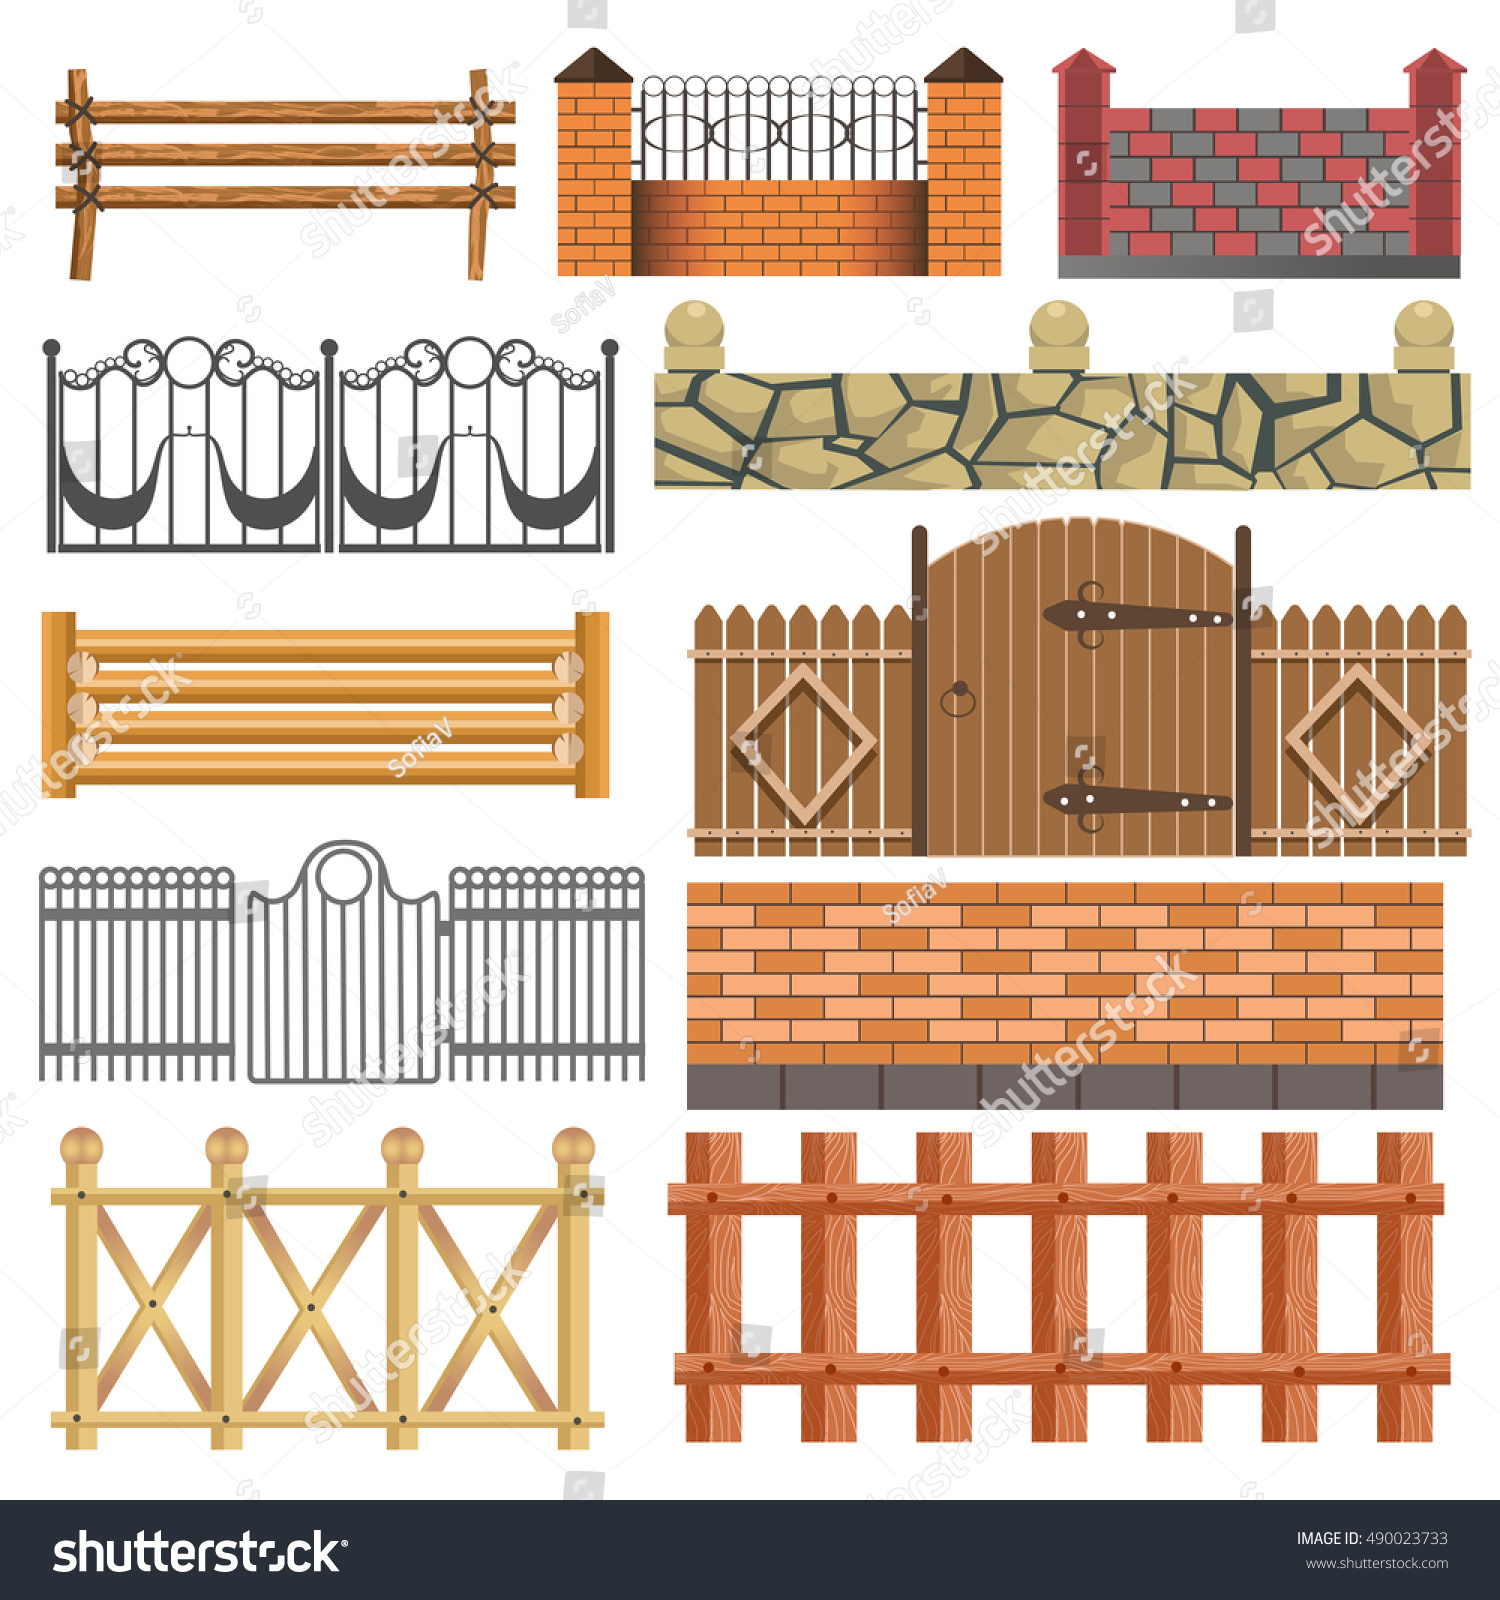 Fence Set Different Fence Design Wooden Stock Vector Royalty Free